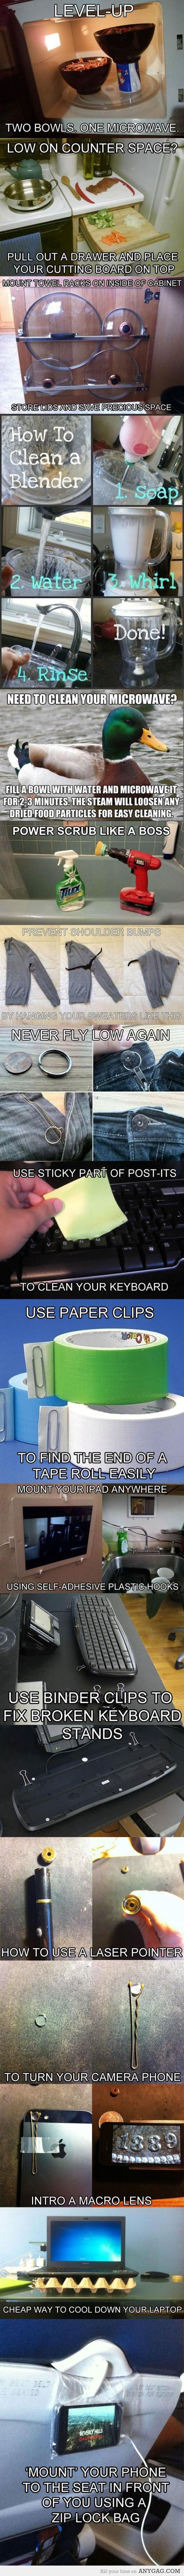 15 Clever Life Hacks to Simplify Your World